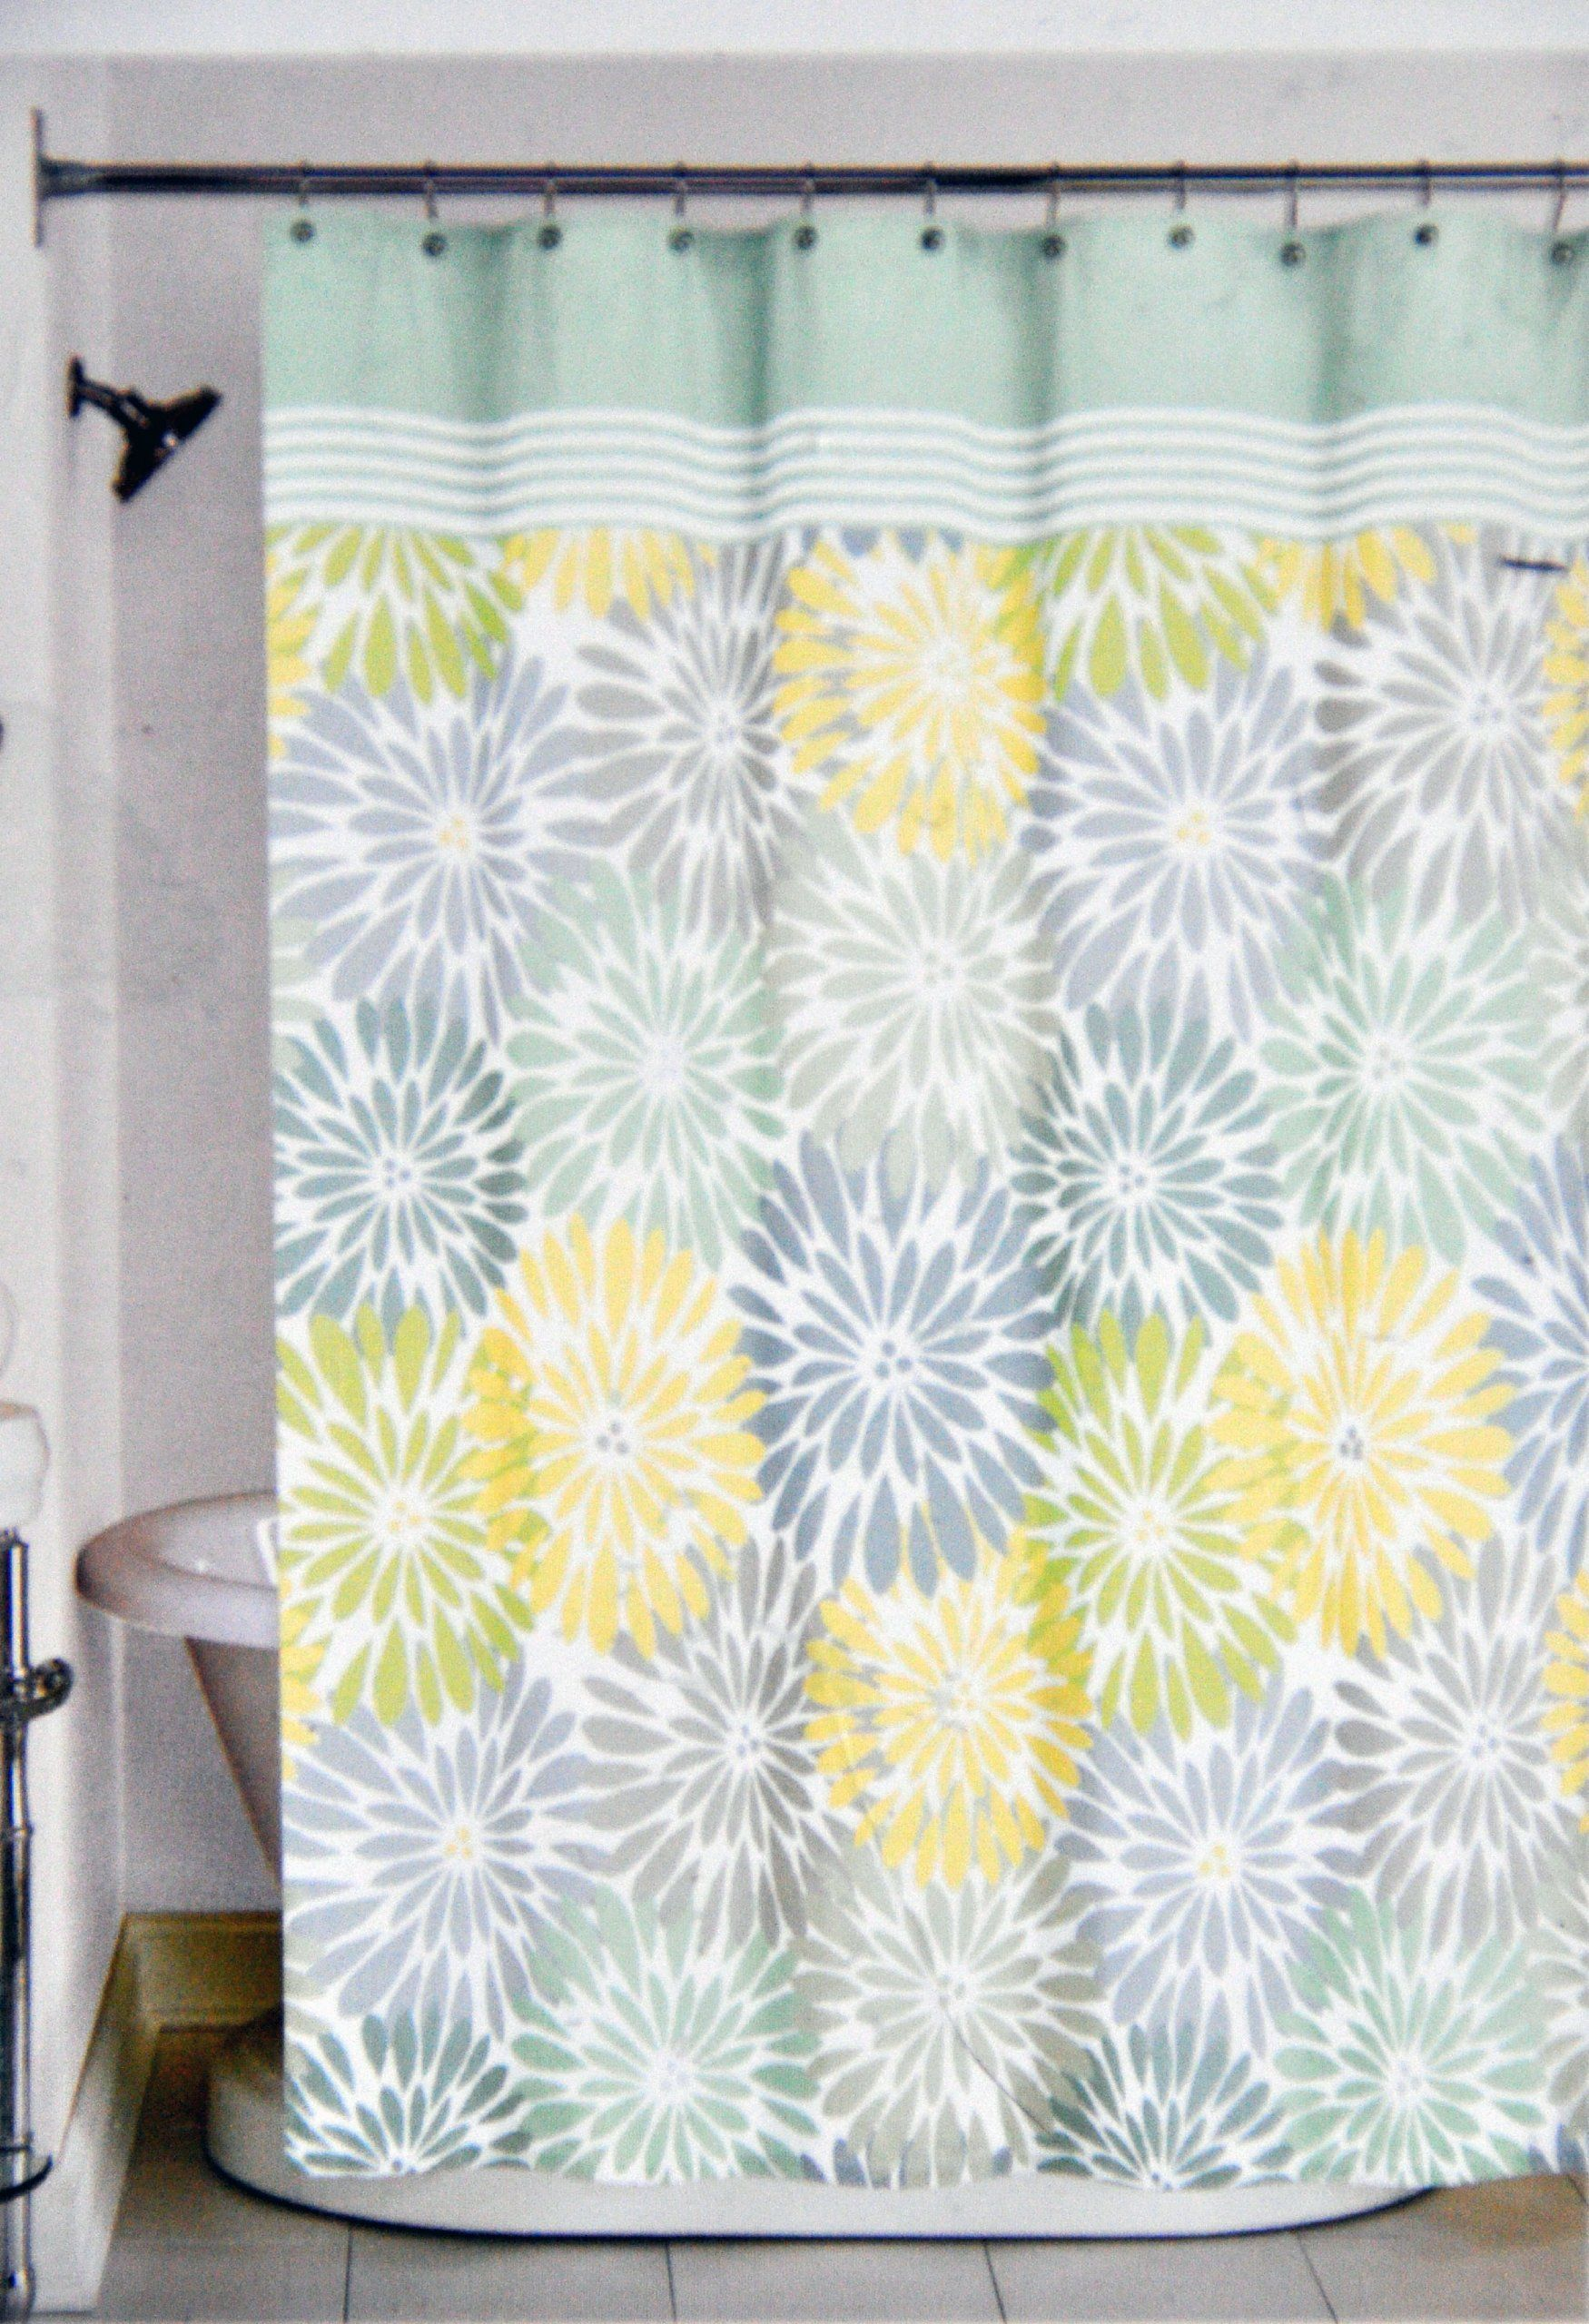 Yellow and blue shower curtain - Amazon Com Peri Home Bayberry Fabric Shower Curtain Yellow Blue Green Gray Floral Design